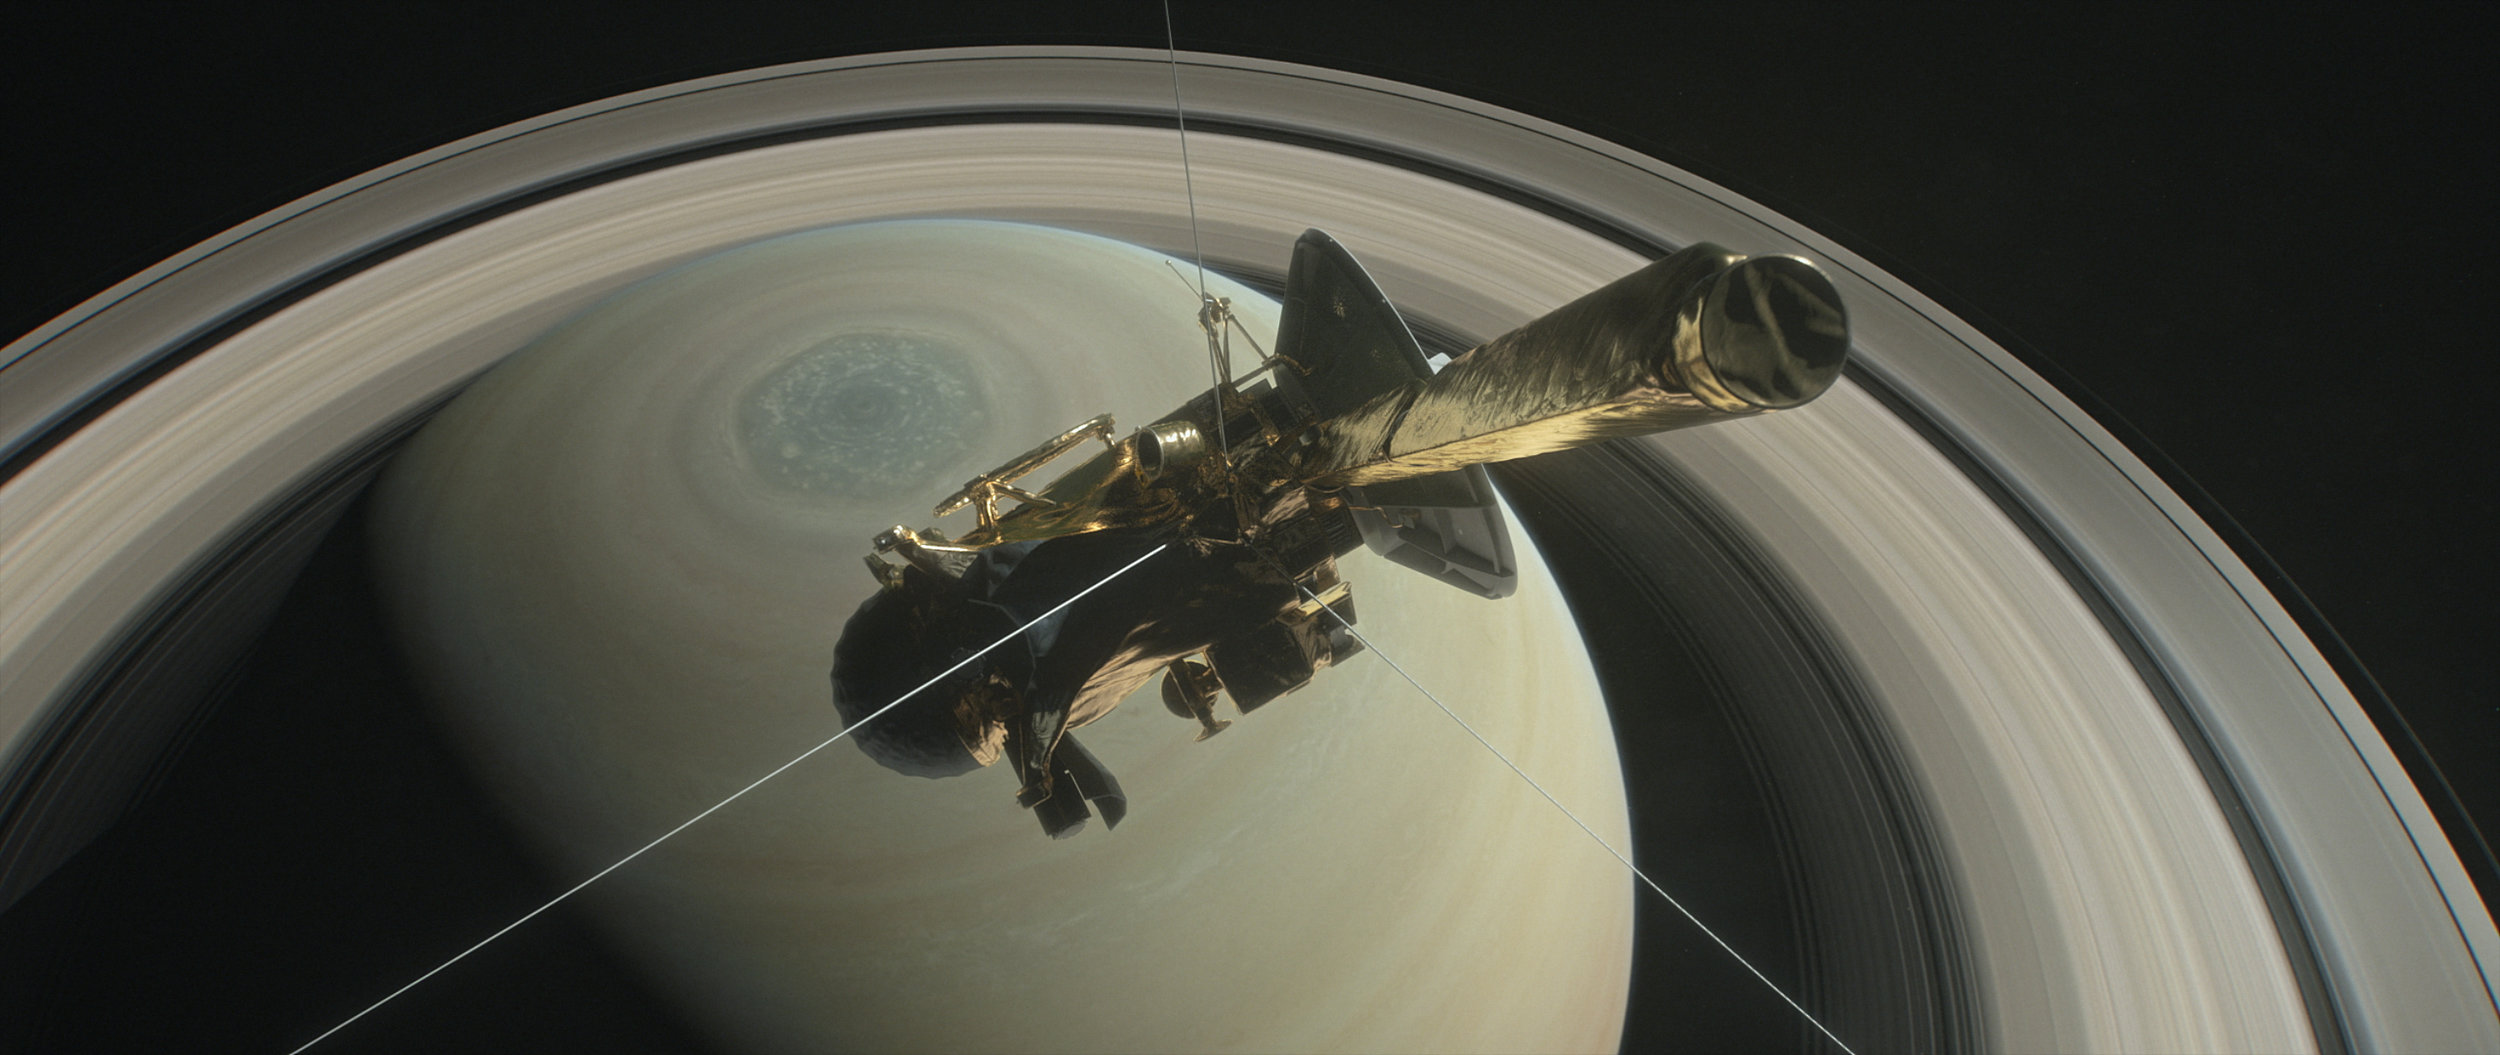 This illustration shows NASA's Cassini spacecraft above Saturn's northern hemisphere prior to one of its 22 grand finale dives. - Image Credits: NASA/JPL-Caltech